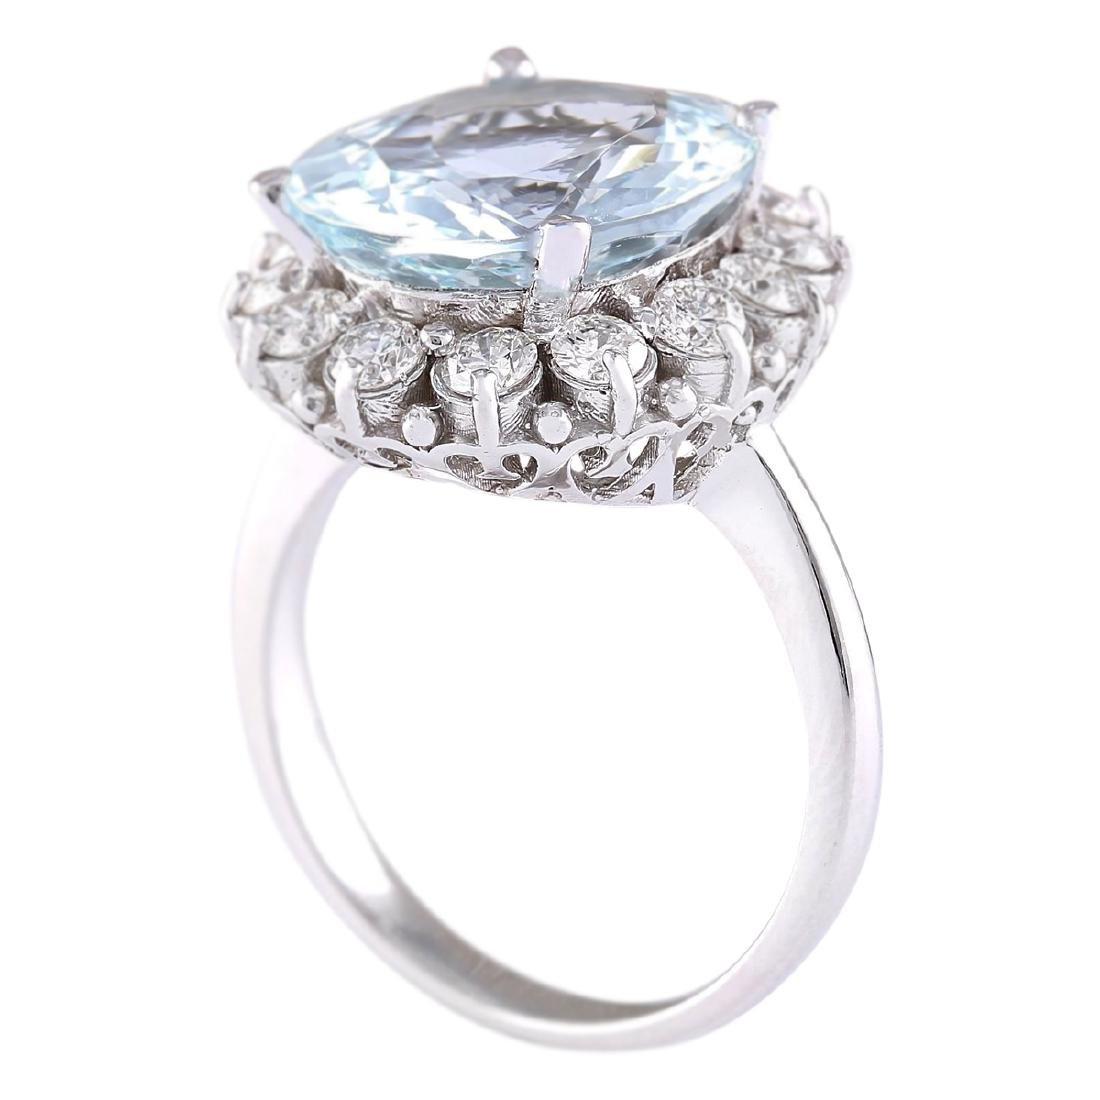 7.01 CTW Natural Aquamarine And Diamond Ring In 18K - 3